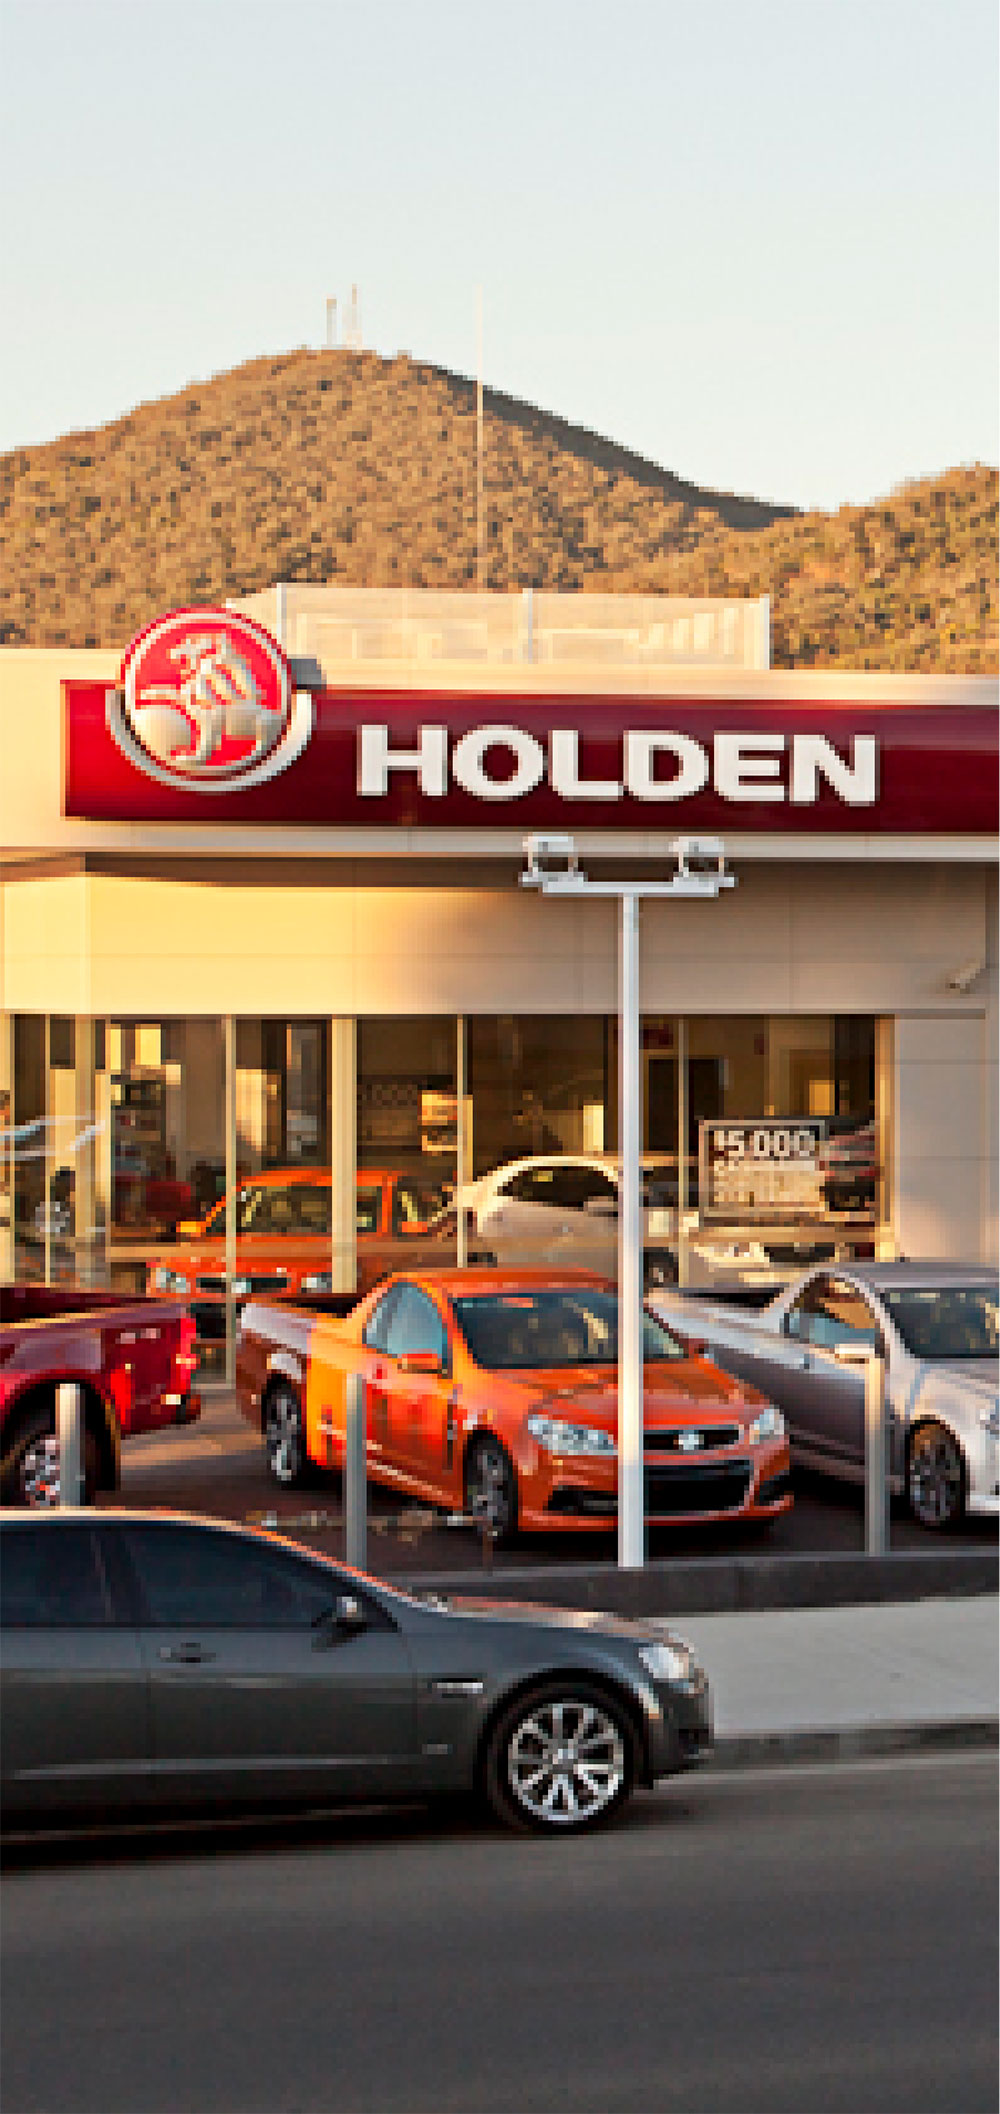 SBA Architects Automotive Projects Kensells Holden